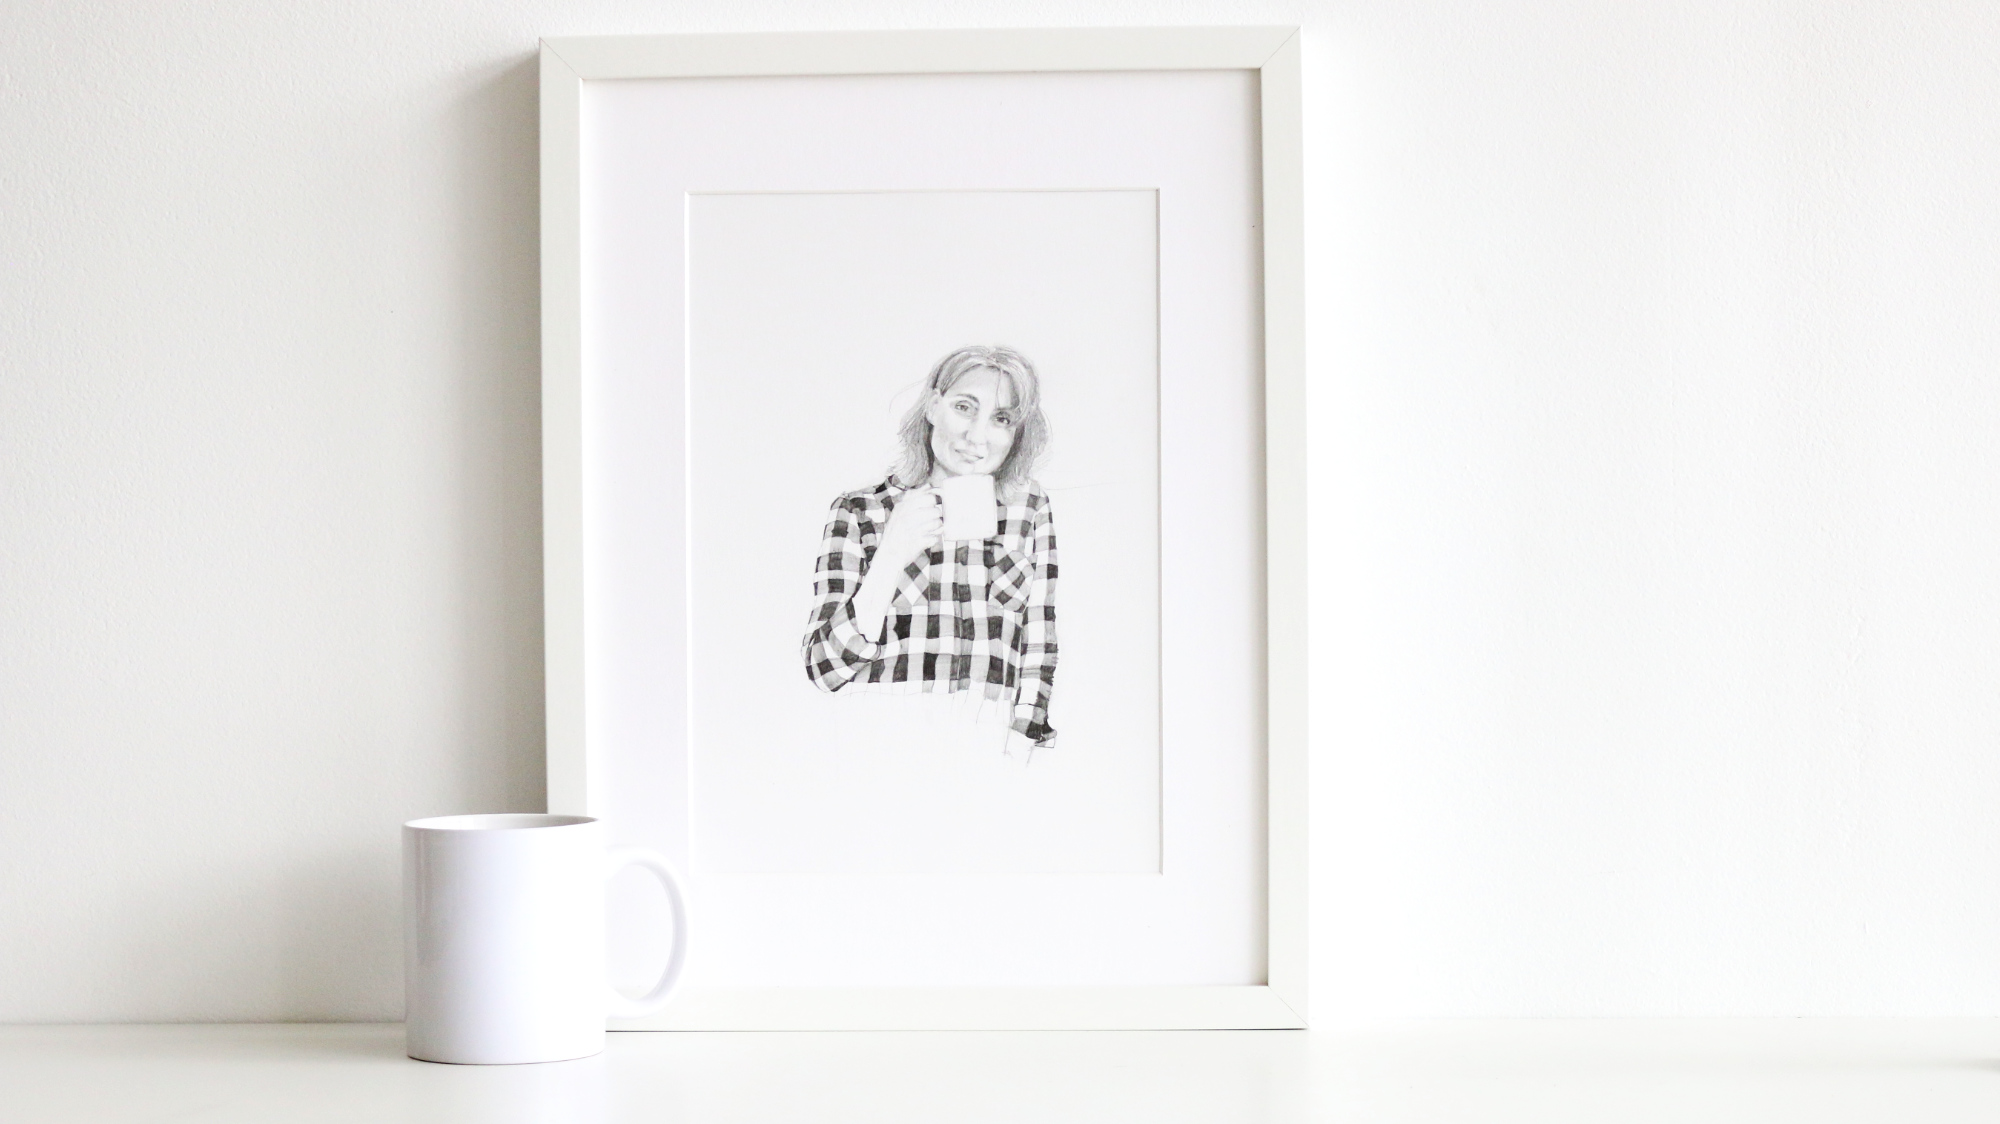 The finished drawing is ready to frame or gift |  Self-Portrait with a Mug , by The Daily Atelier